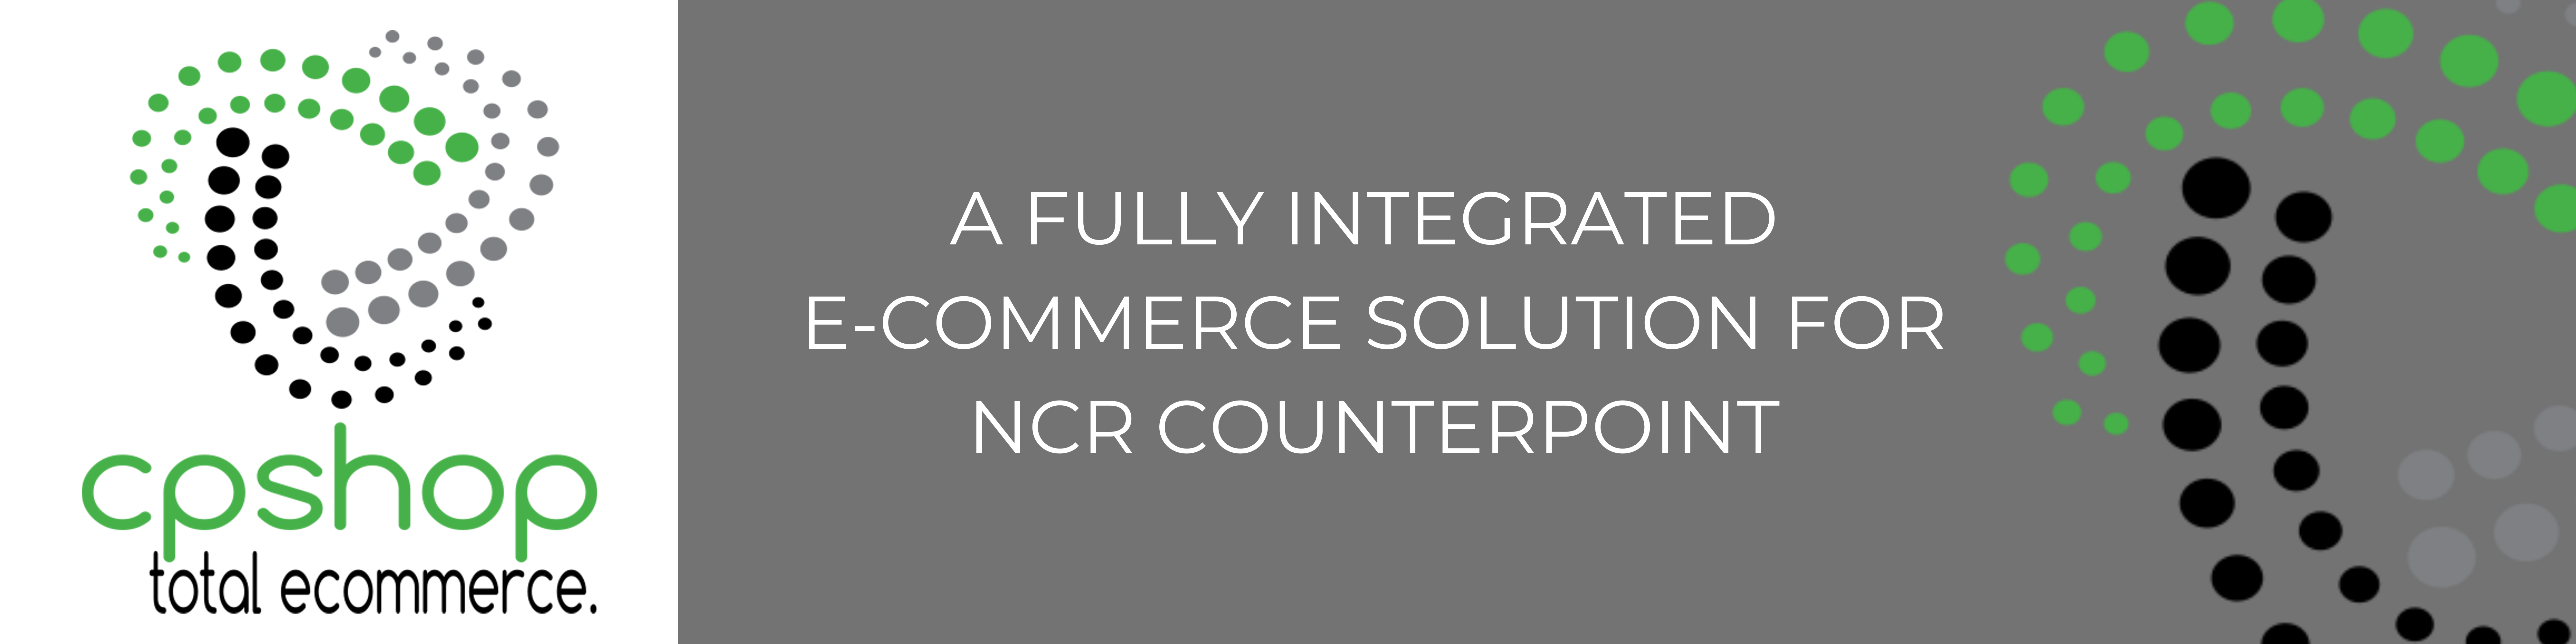 CPShop A Fully Integrated E-commerce Solution For NCR Counterpoint